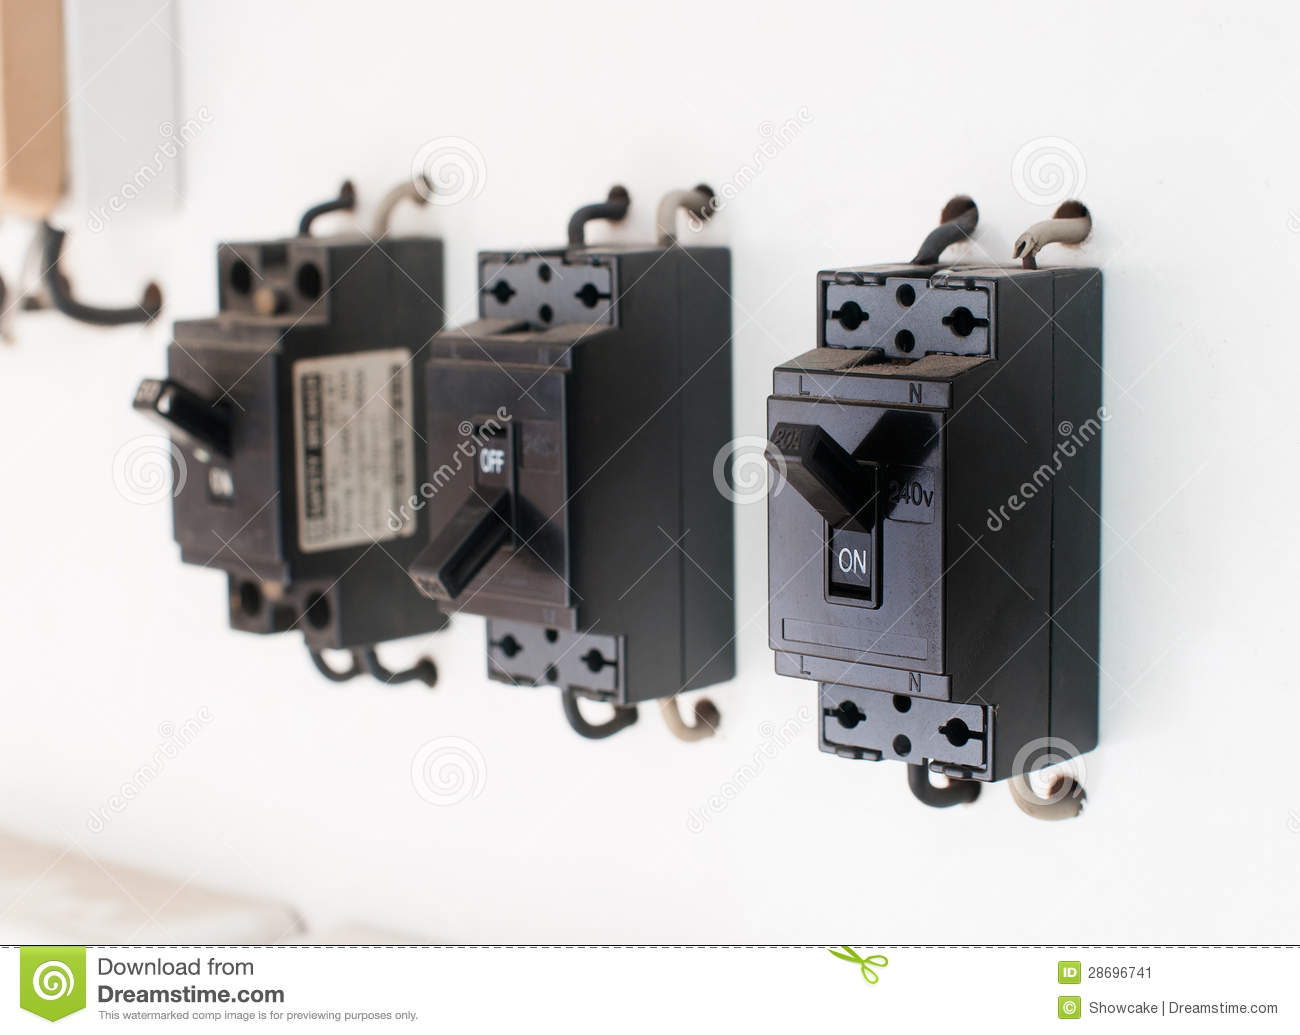 Delighted 7 Way Guitar Switch Tiny Strat Hss Wiring Regular How To Install A Remote Car Starter Video Gretsch Wiring Harness Old Alarm Diagram PurpleTelecaster With 3 Pickups Breaker Switch Stock Image   Image: 28696741